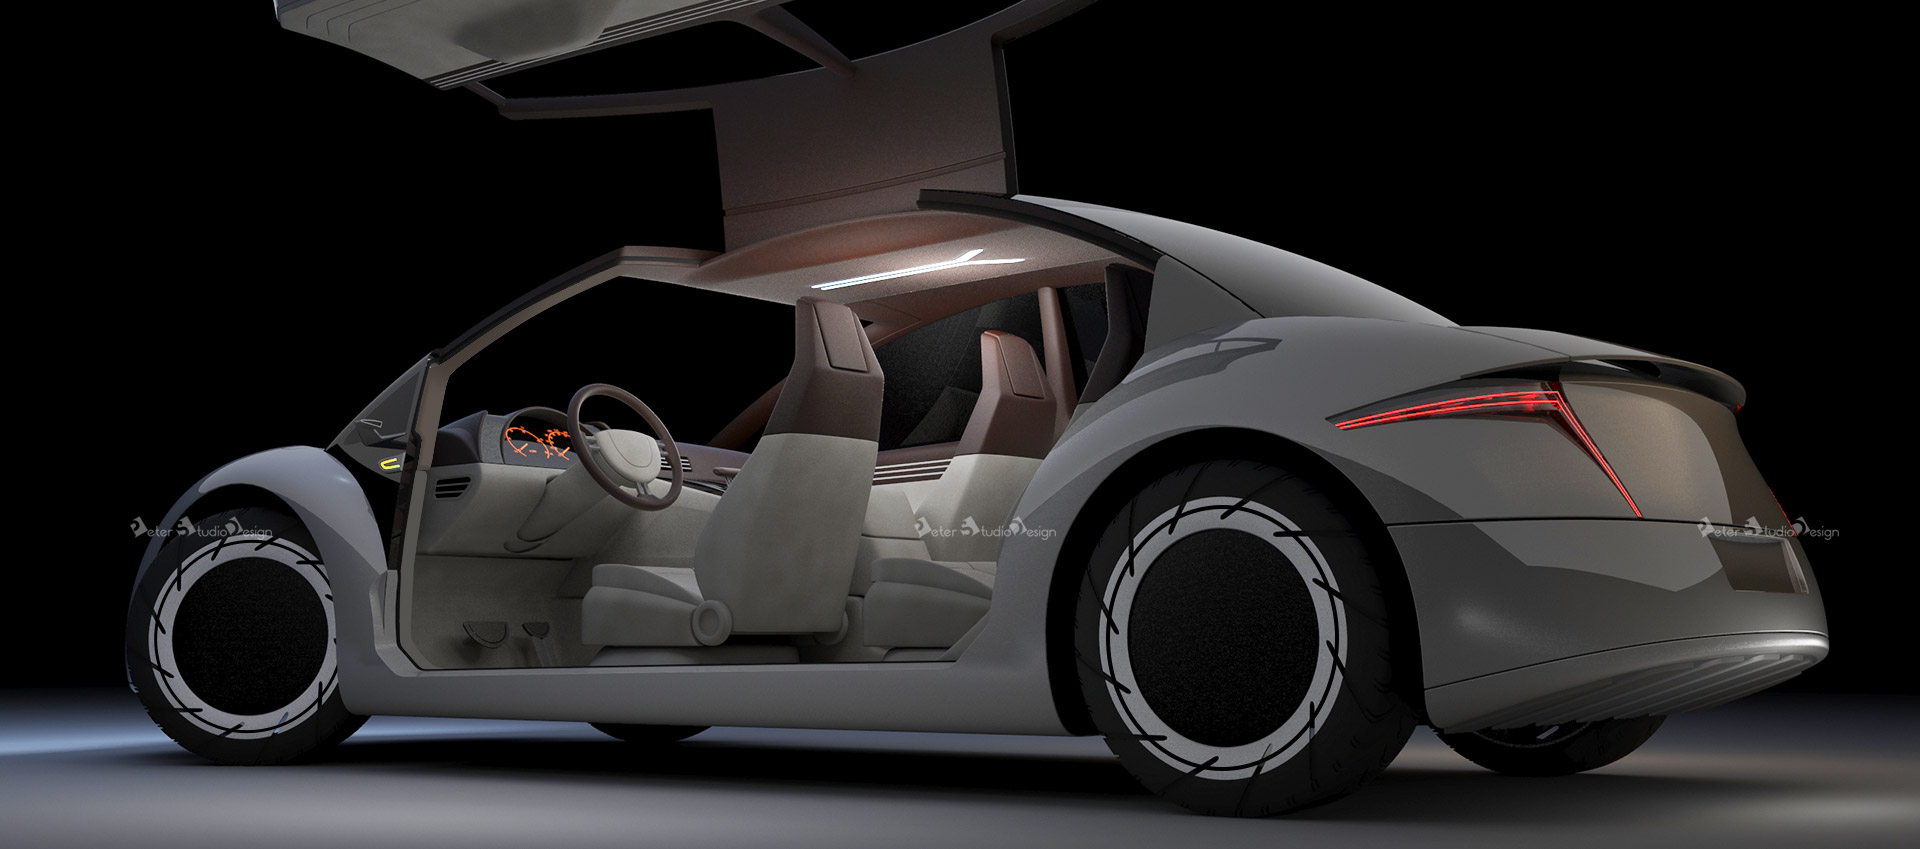 Car design concept with wing opening doors